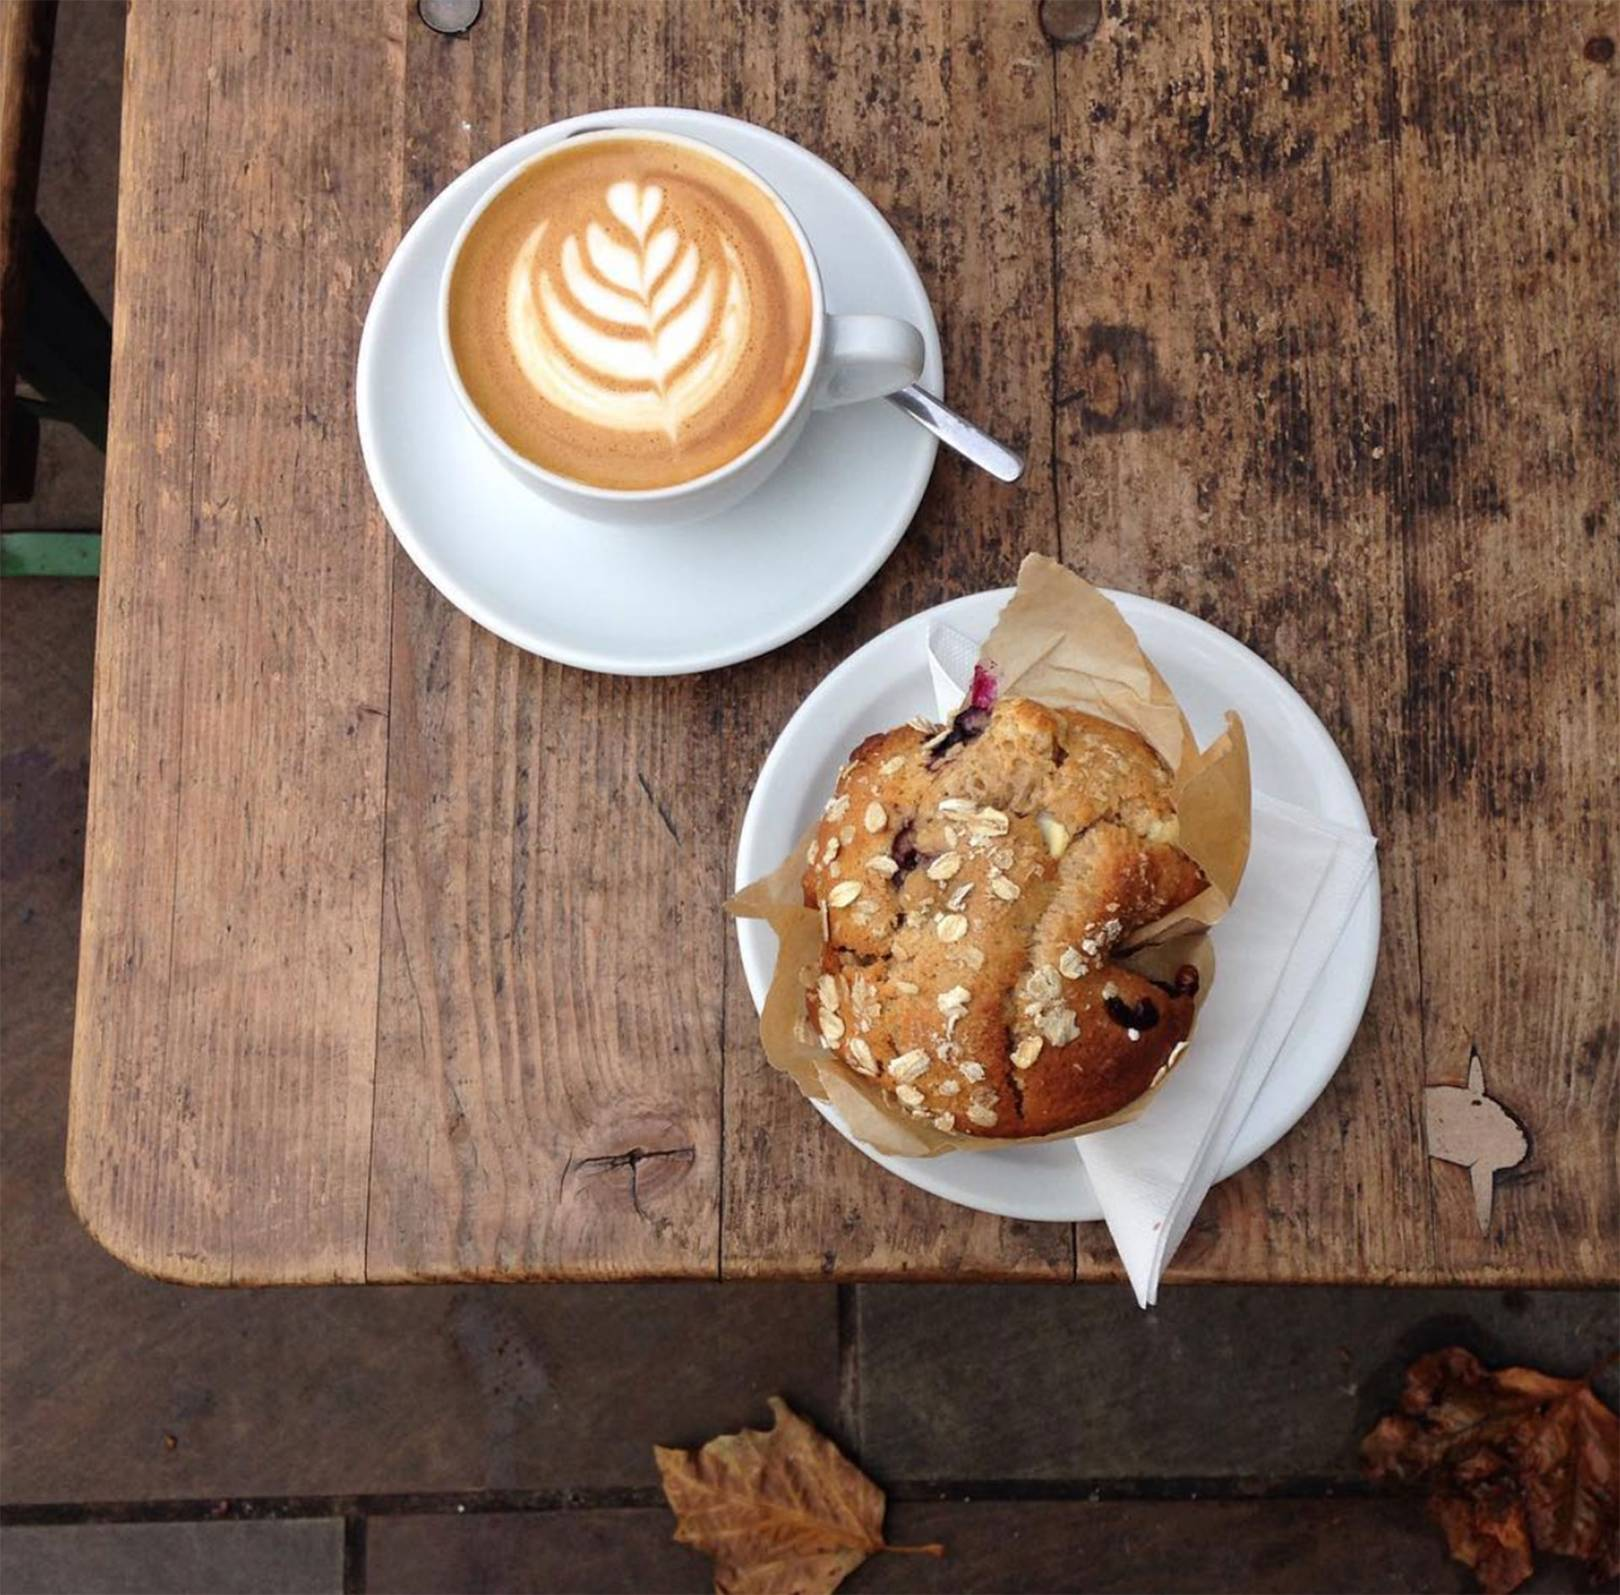 afab5e4201e The 11 Best Coffee Shops In London | British Vogue